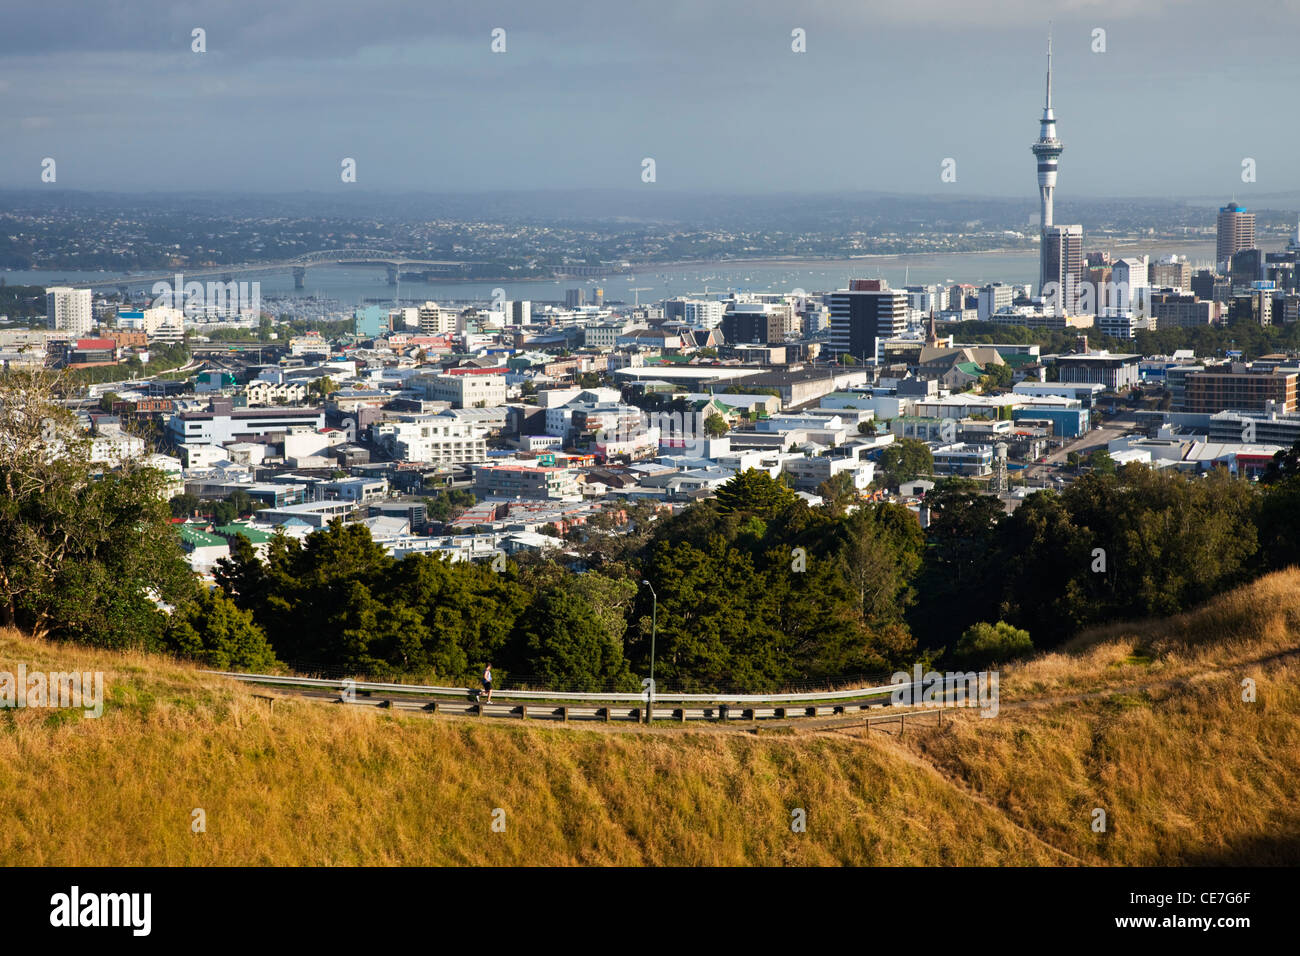 View of the city from Mt Eden (Maungawhau). Auckland, North Island, New Zealand - Stock Image